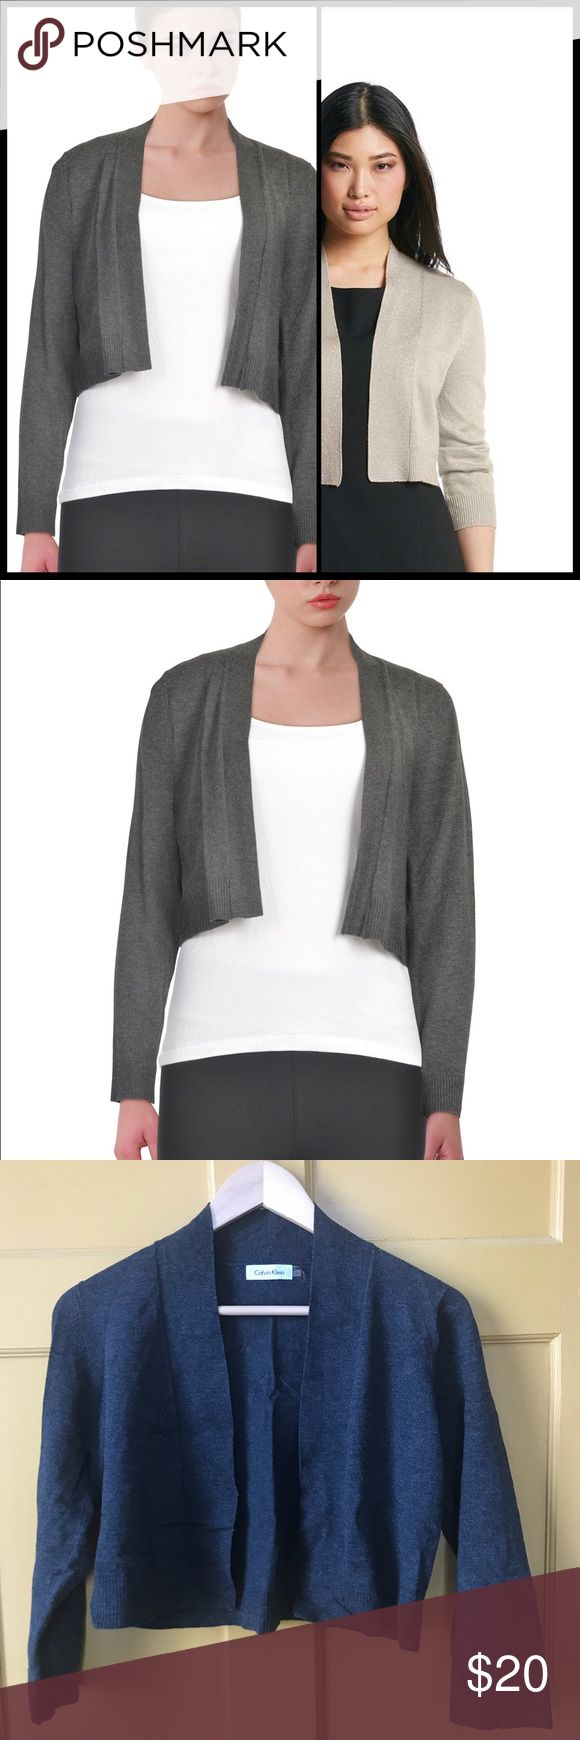 """Calvin Klein Shrug NWOT Never worn! Size Medium  18"""" armpit to armpit  17"""" length Super soft versatile addition to any delicate top Calvin Klein Sweaters Shrugs & Ponchos"""